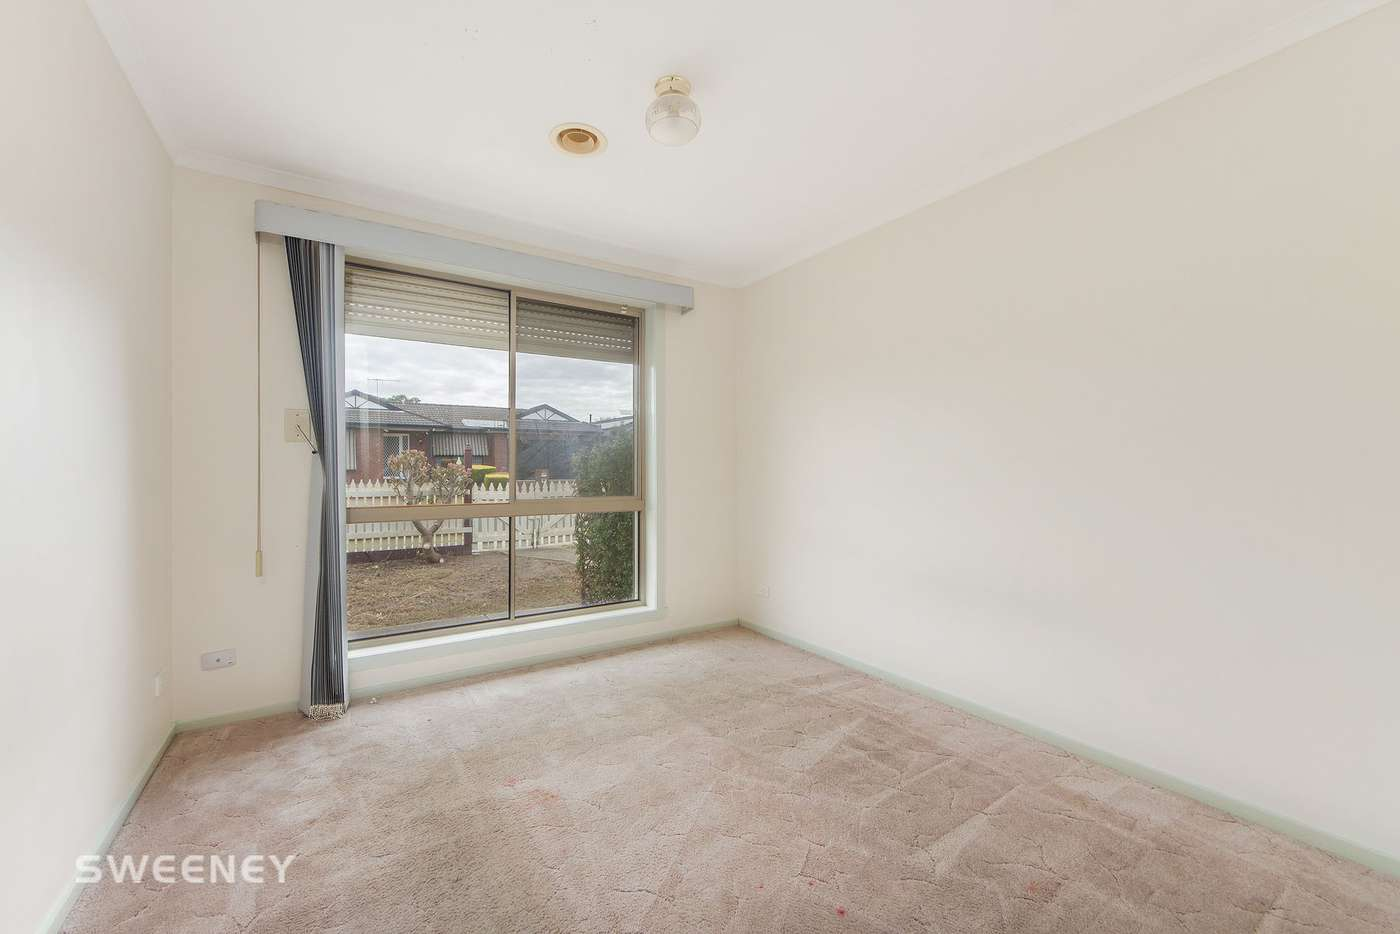 Sixth view of Homely unit listing, 14 Vanessa Way, Delahey VIC 3037